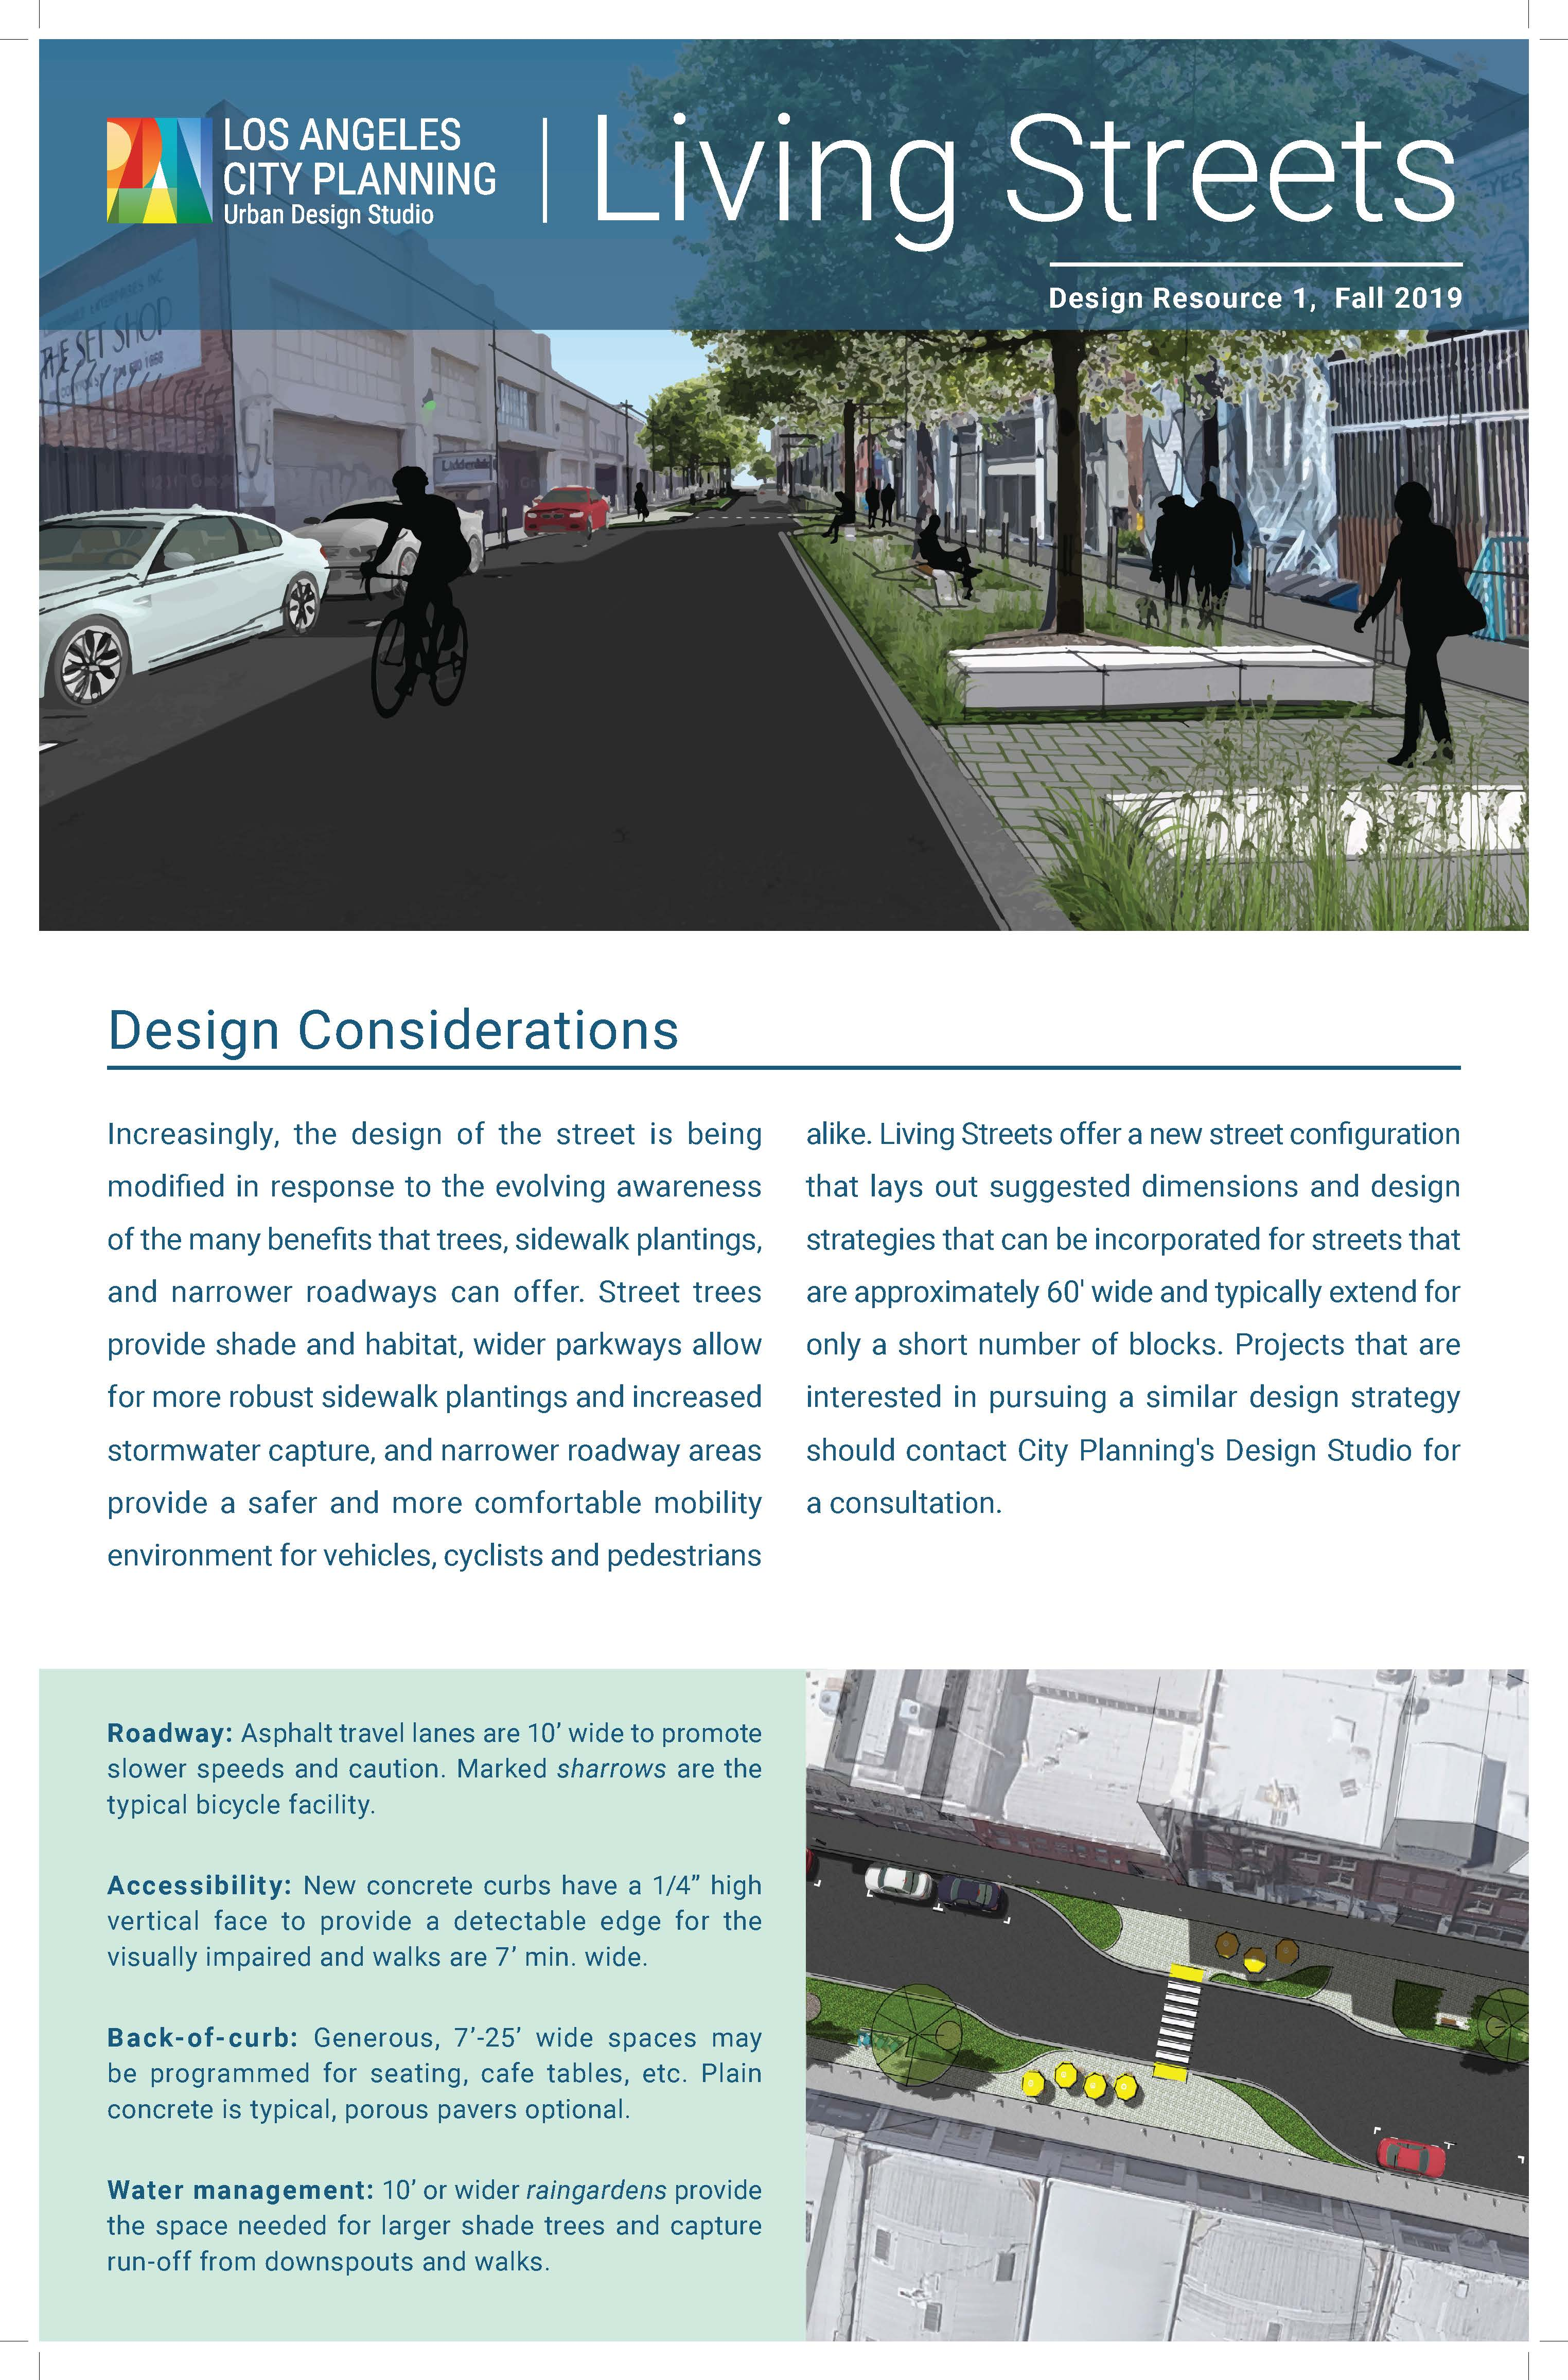 Design Resource 1: Living Streets